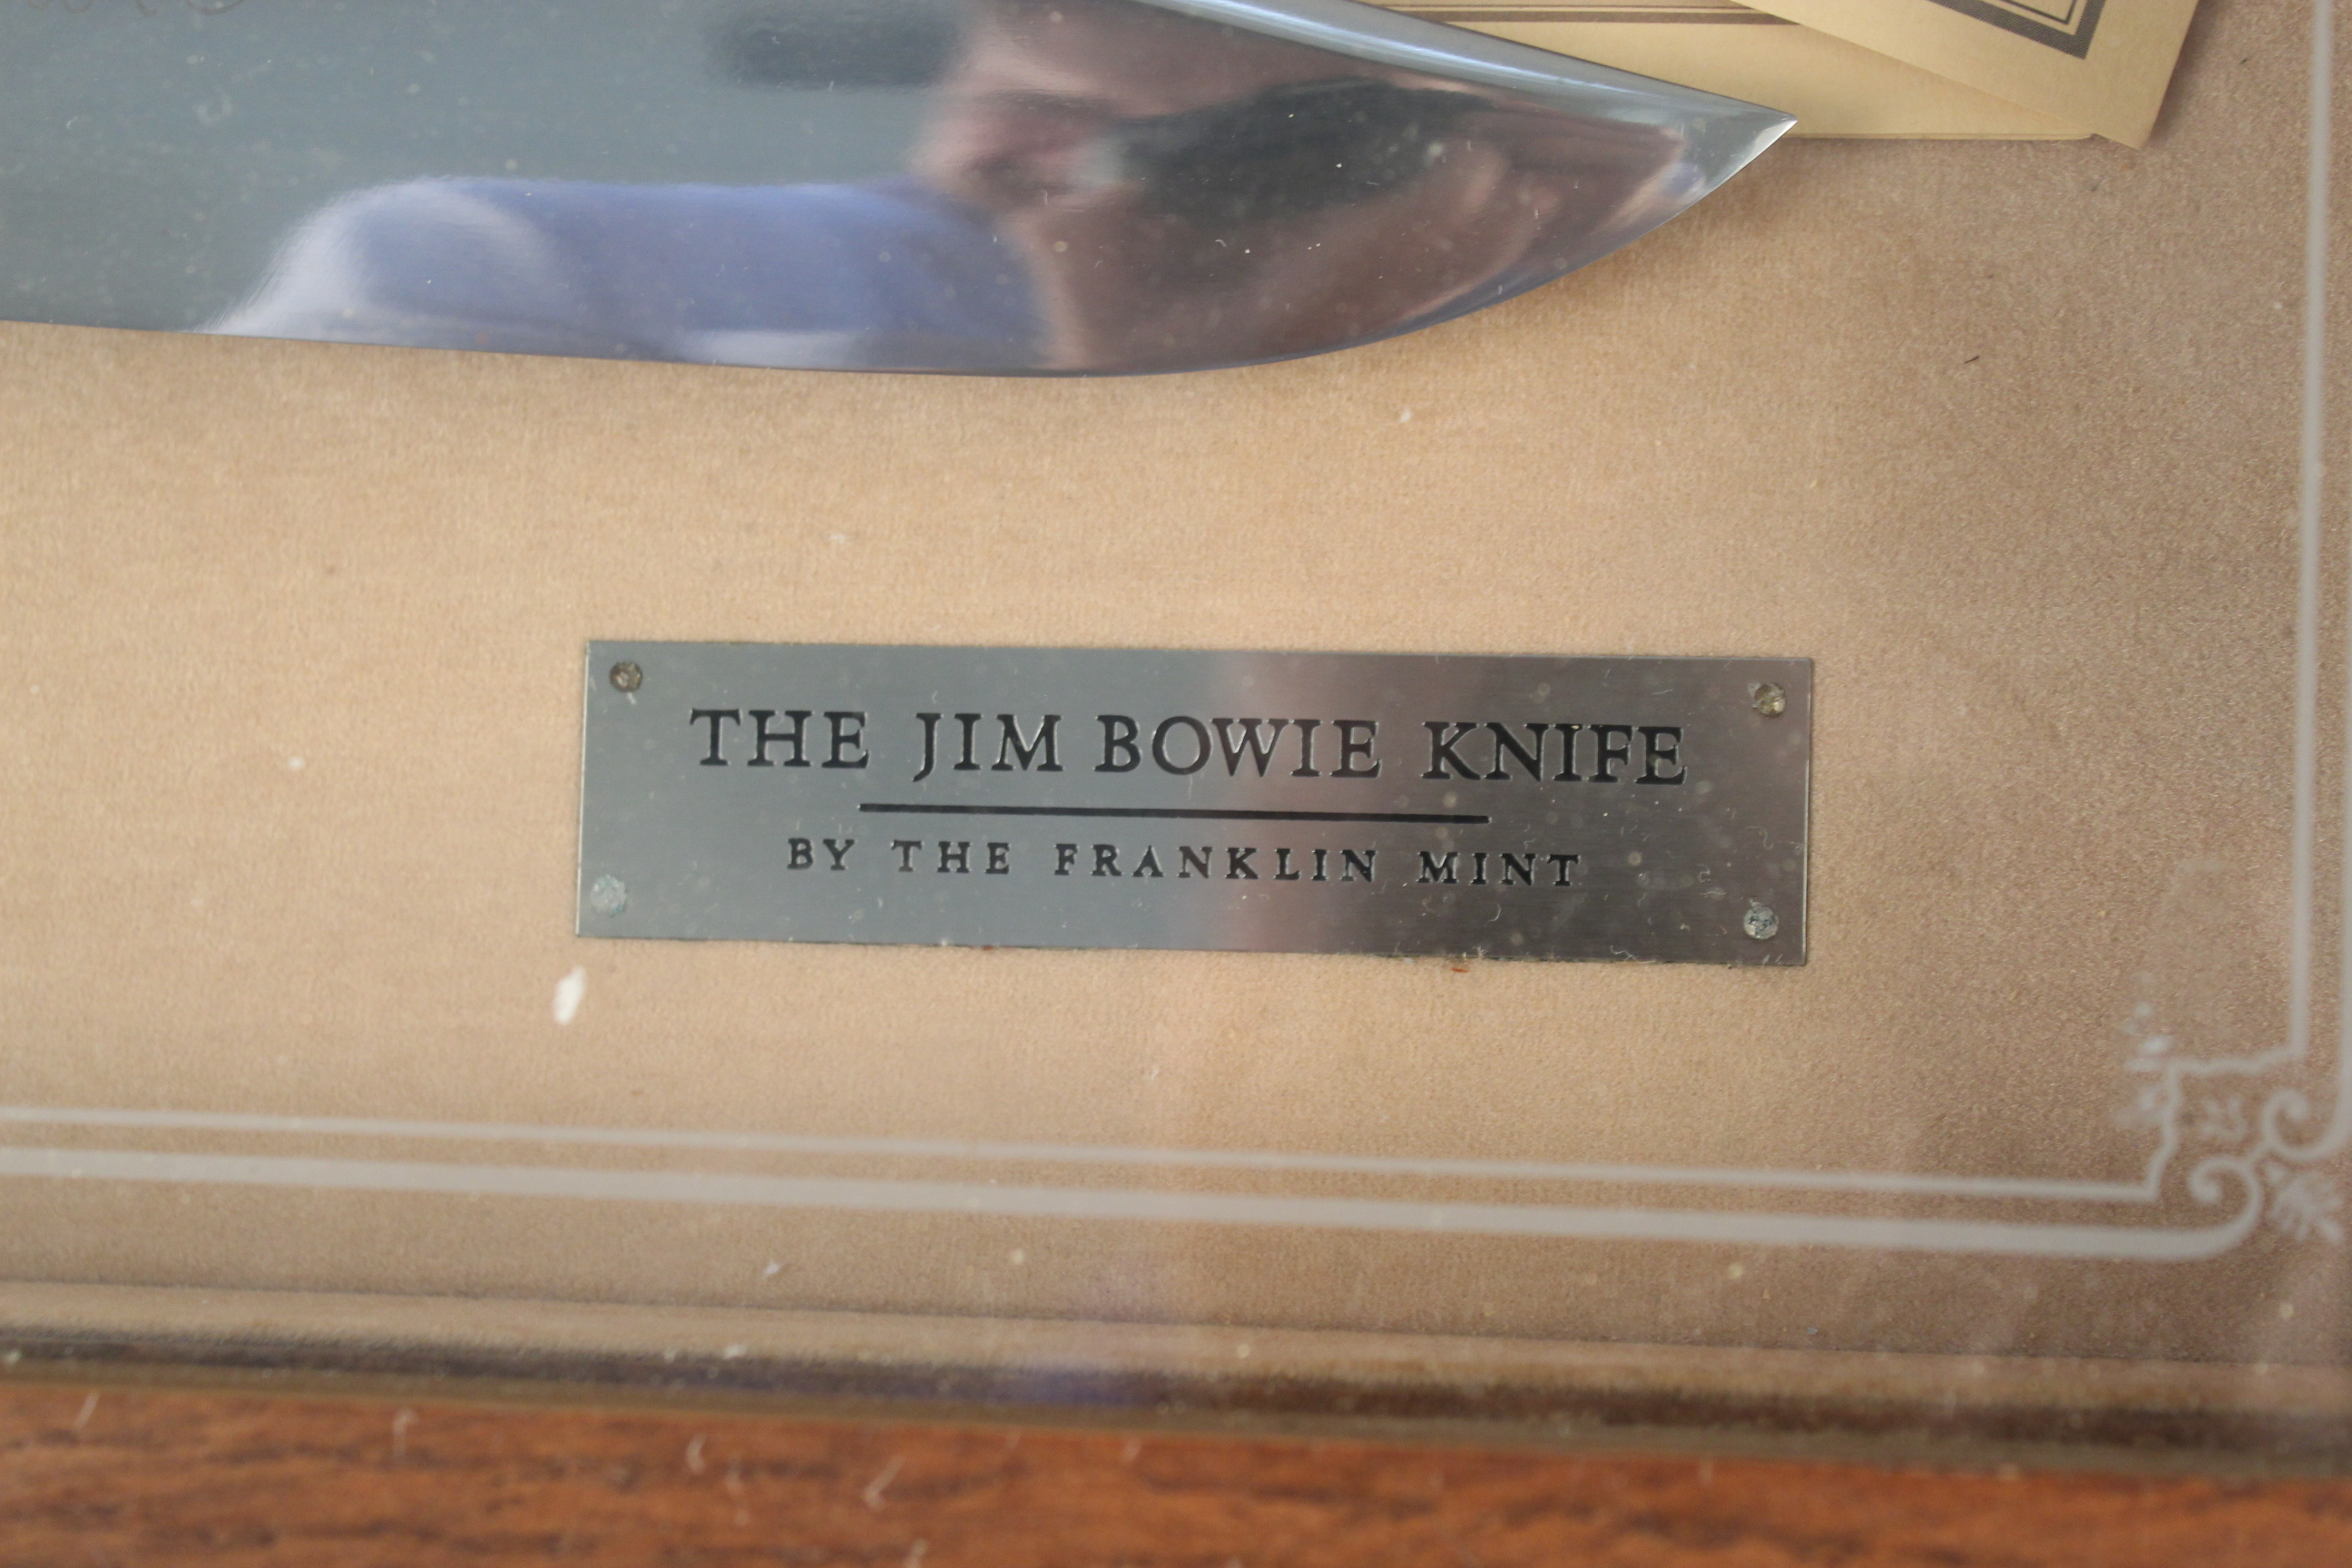 A cased collectors 'Jim Bowie knife' by Franklin Mint - Image 3 of 4